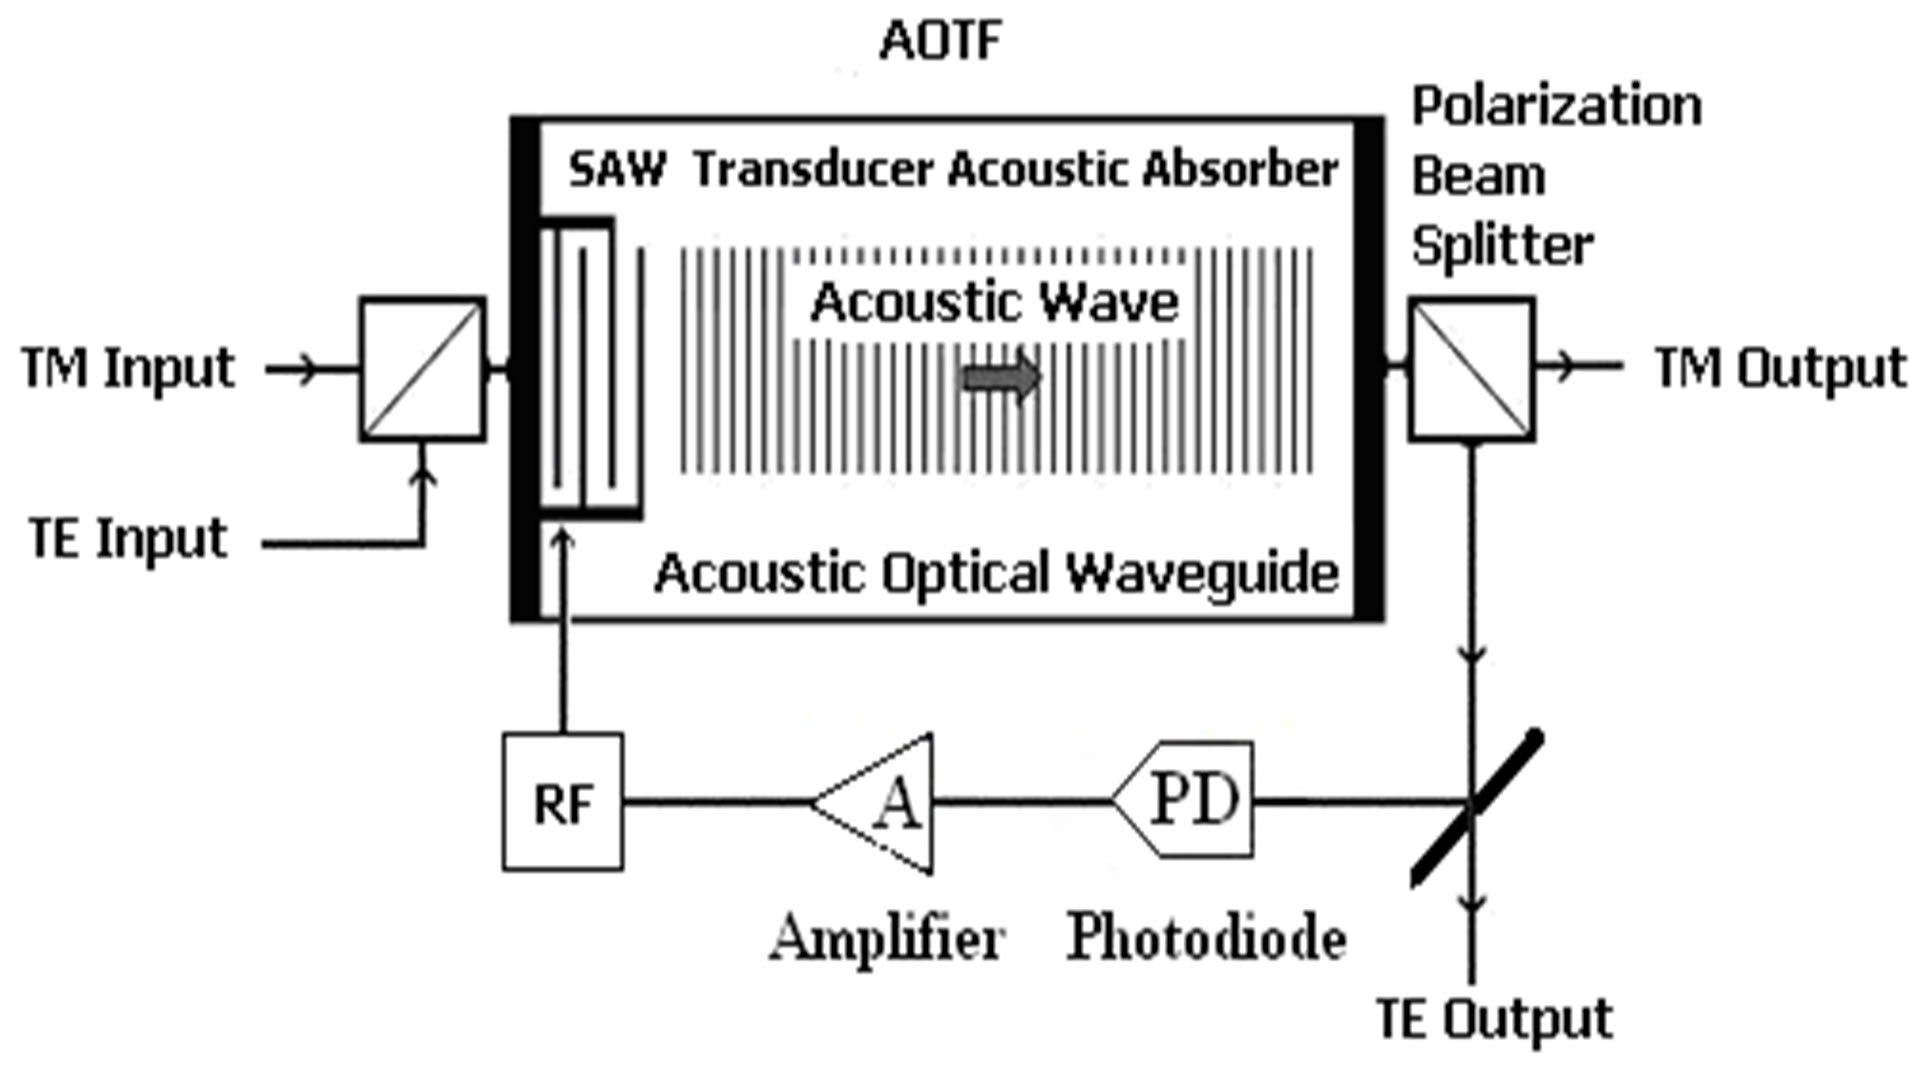 directional coupler schematic with 3 9801272 18236 on Microwave Synthesis A Physical Concept further Half And Full Wave Rectification From Ac To Dc likewise 012005 additionally Antenna 20Couplers additionally 3 9801272 18236.